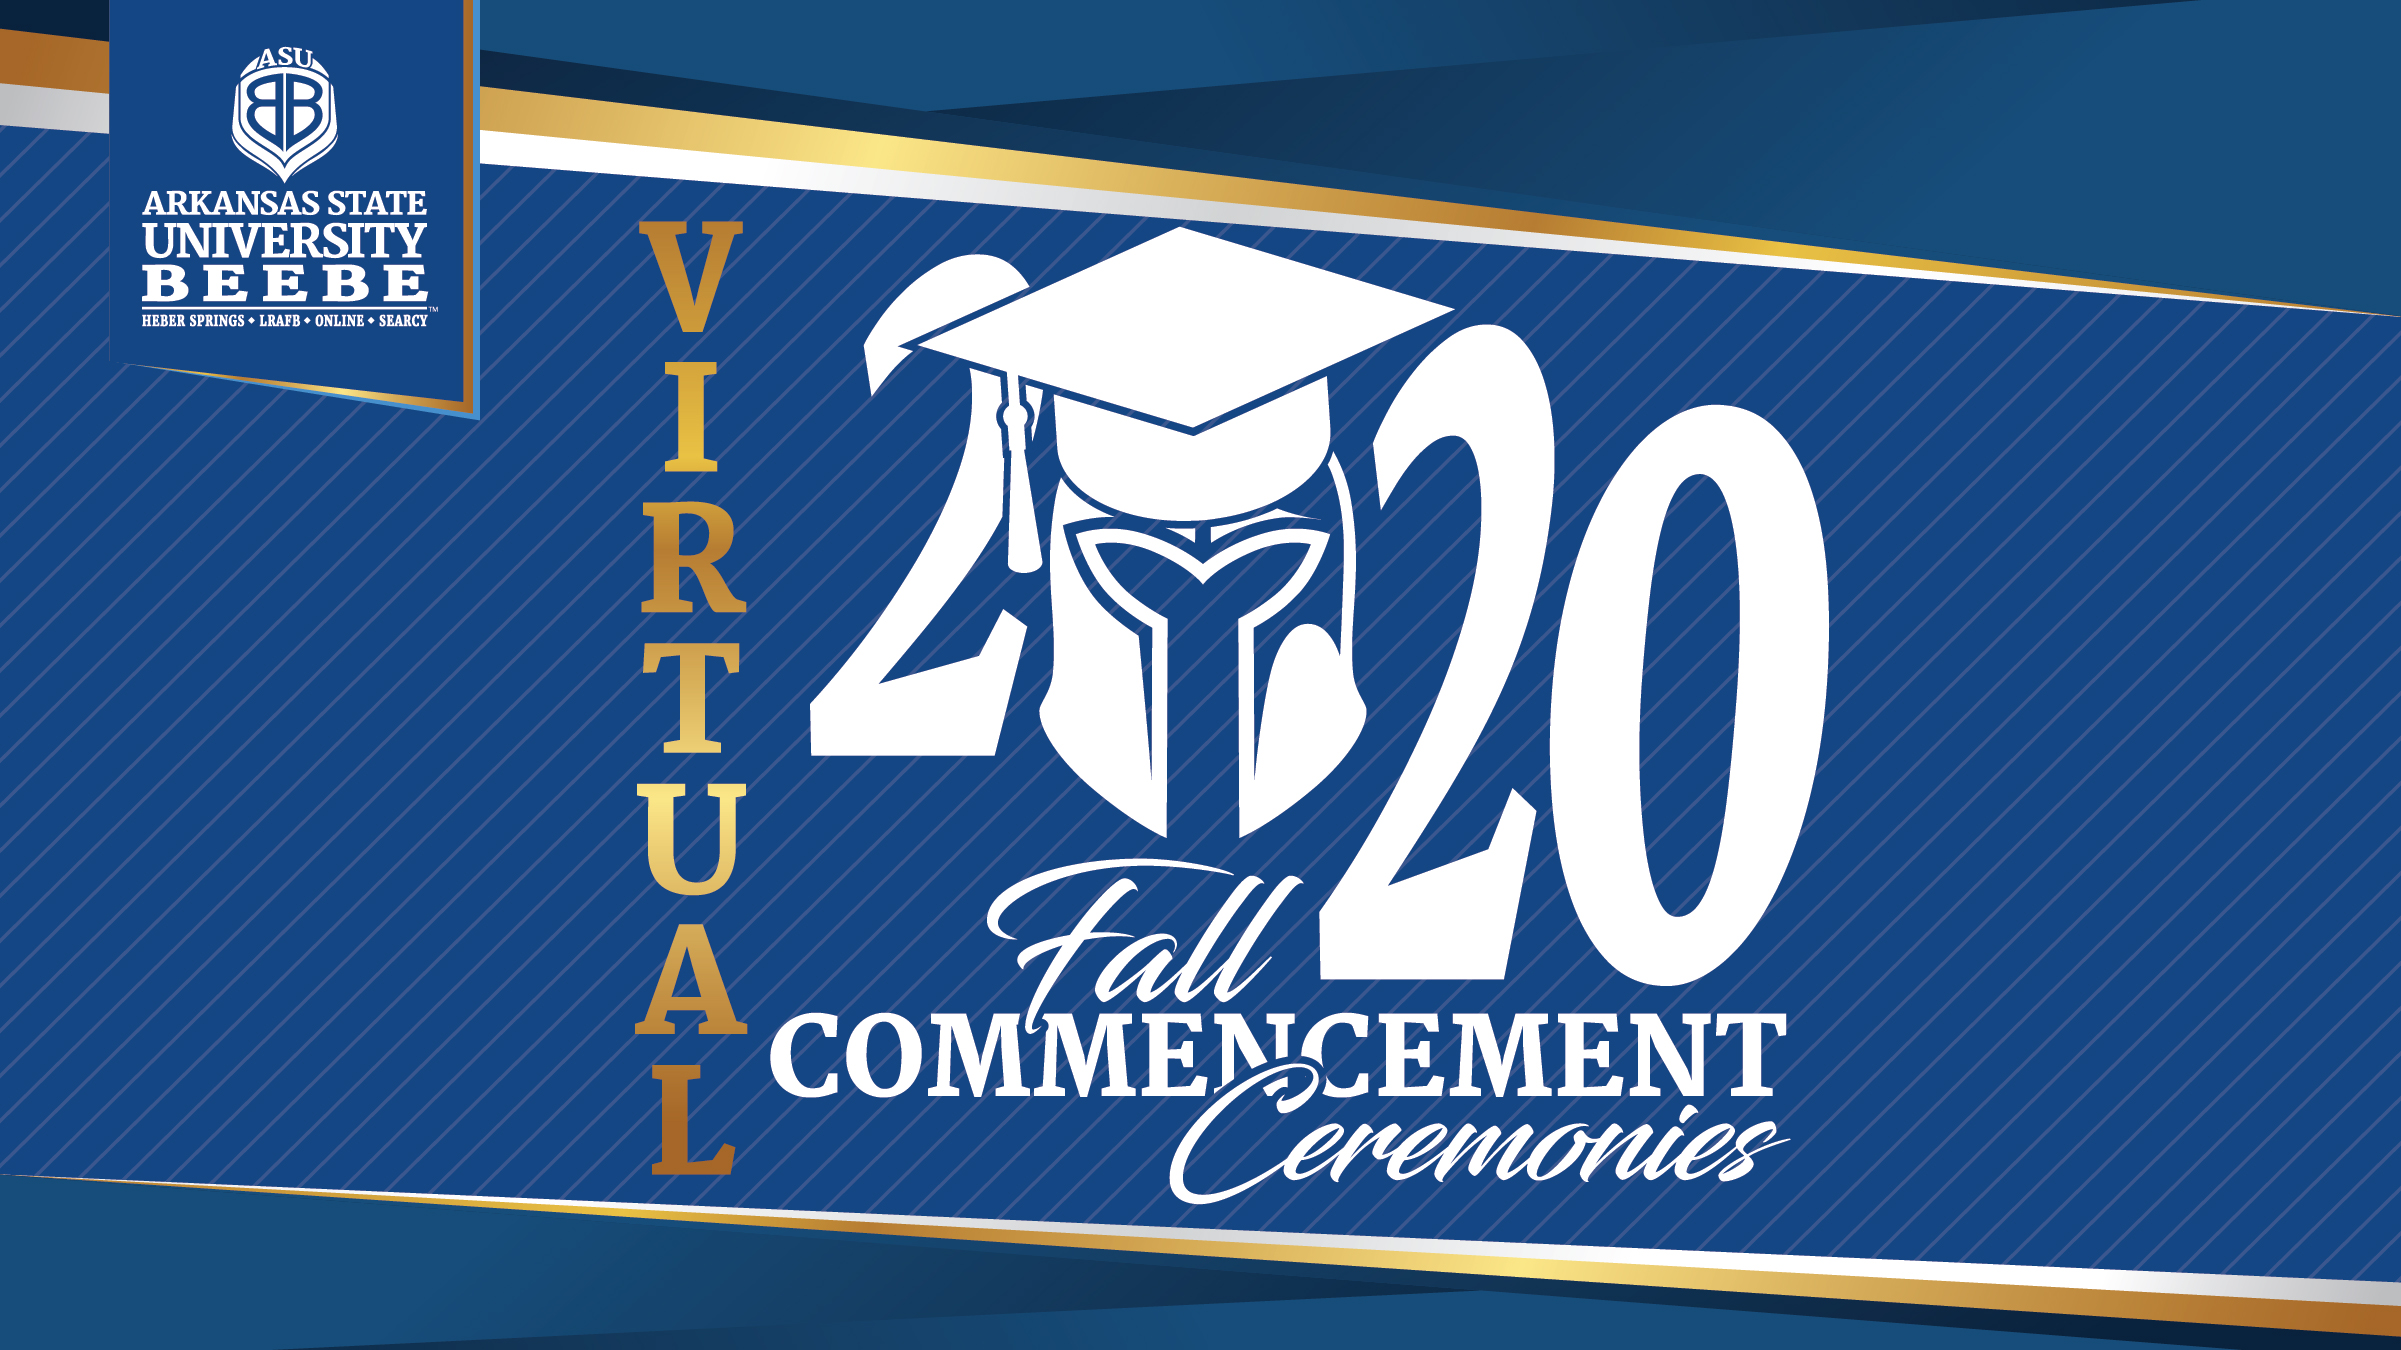 ASUB Fall 2020 Commencement Graphic